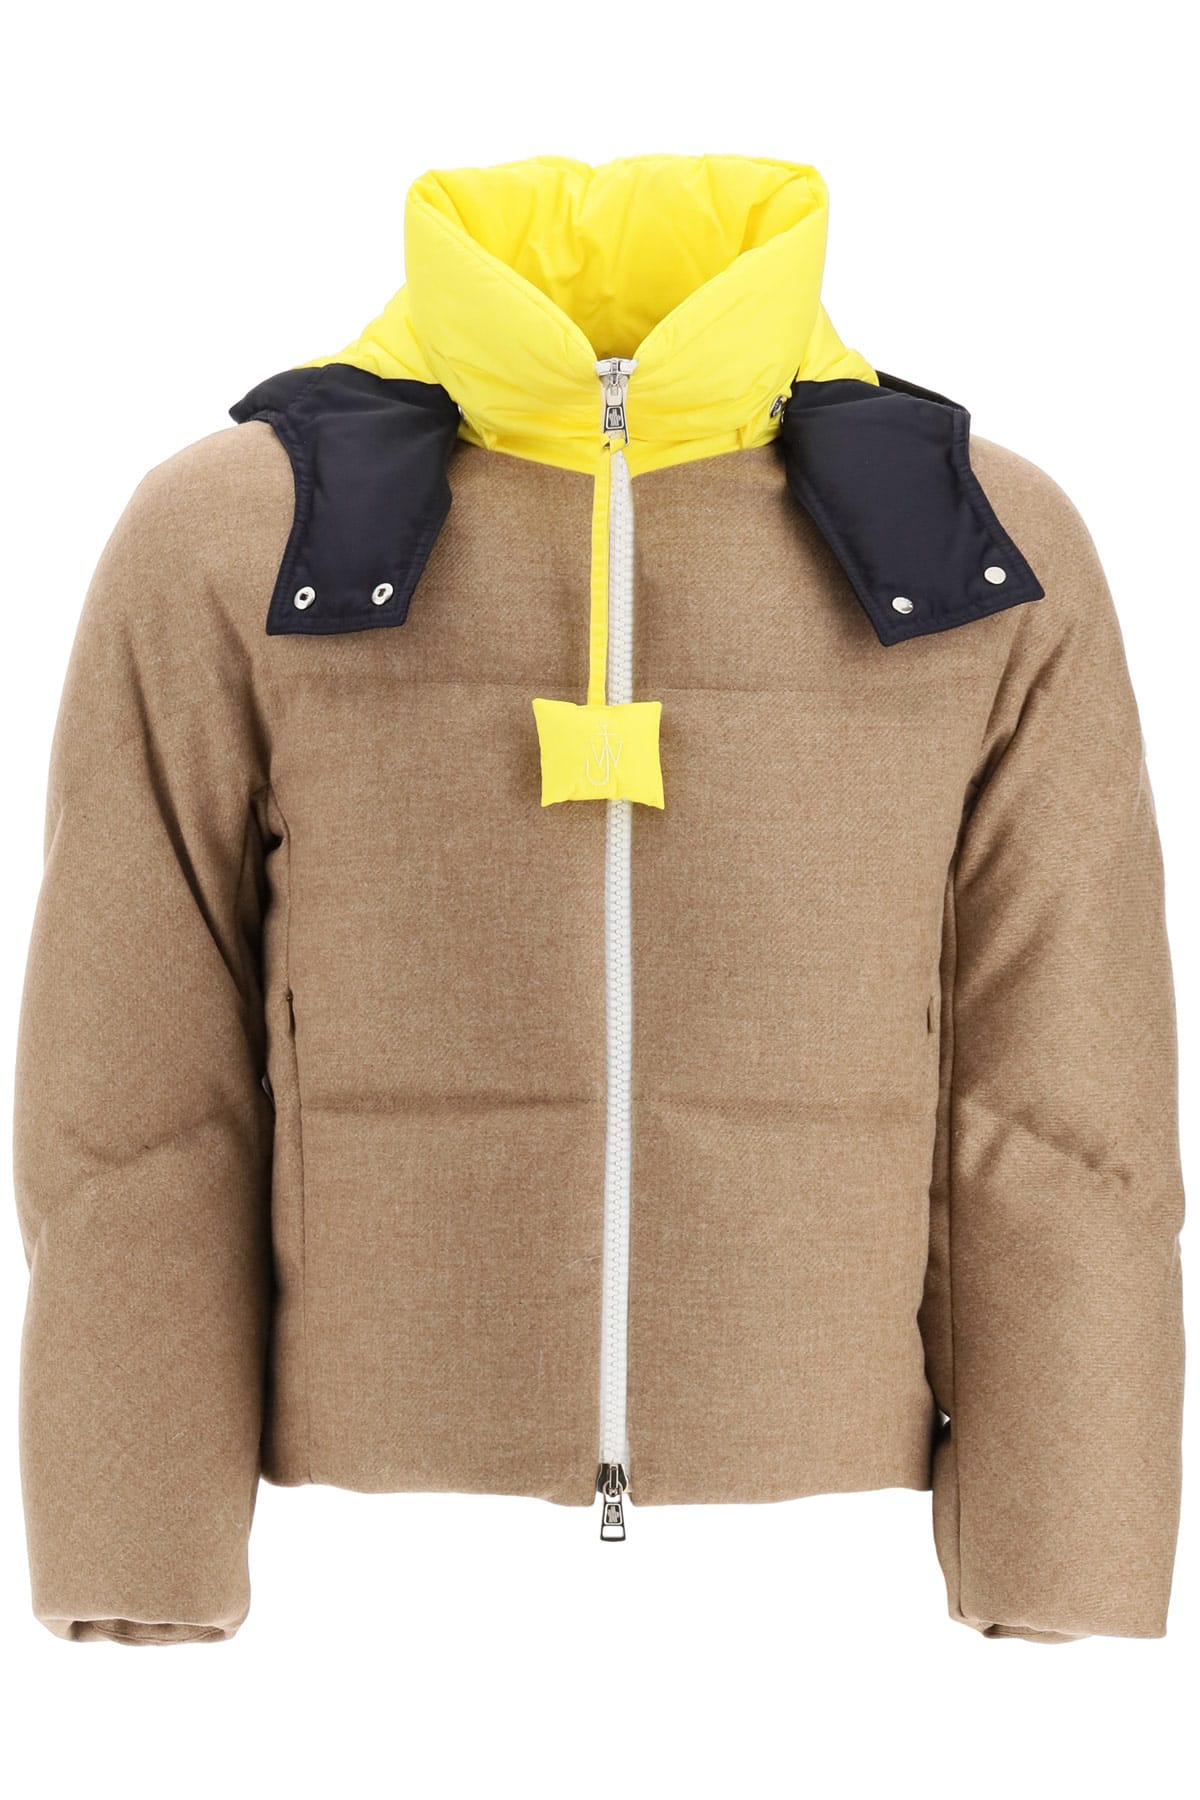 Moncler Genius 1 STONORY DOWN JACKET